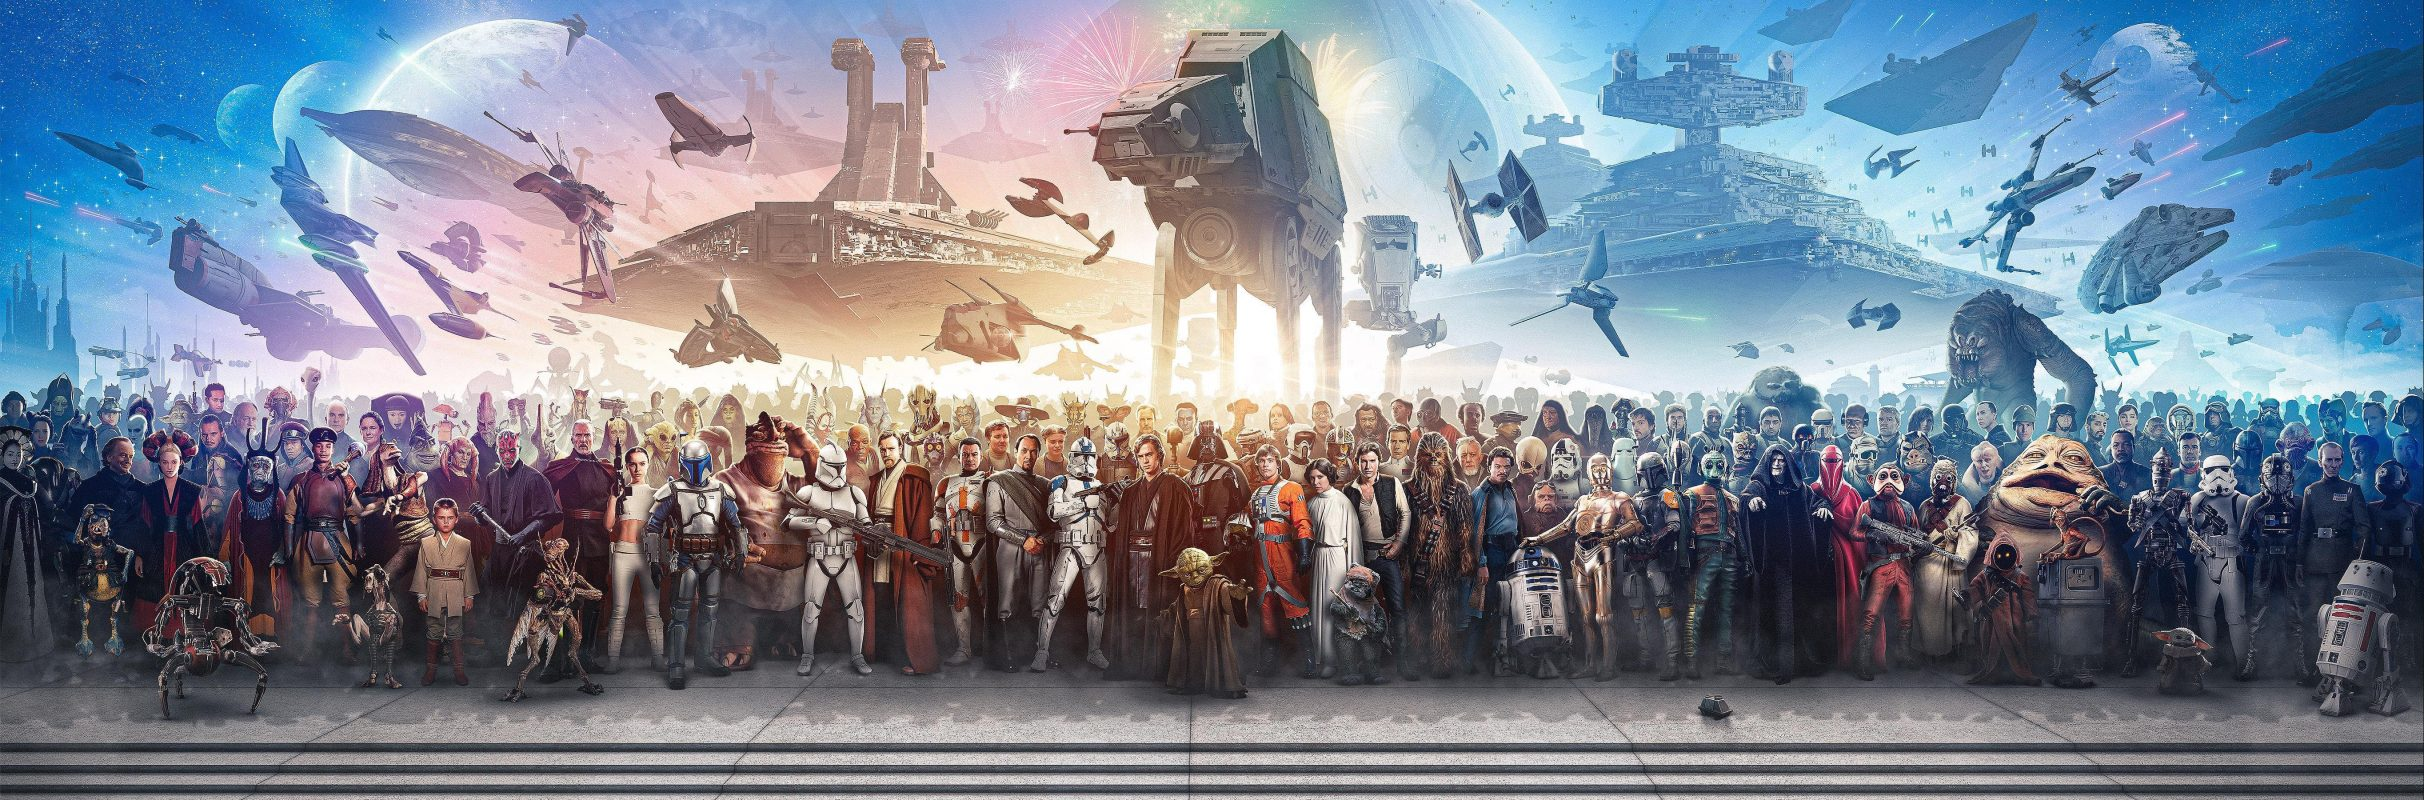 Every OT and PT Star Wars character